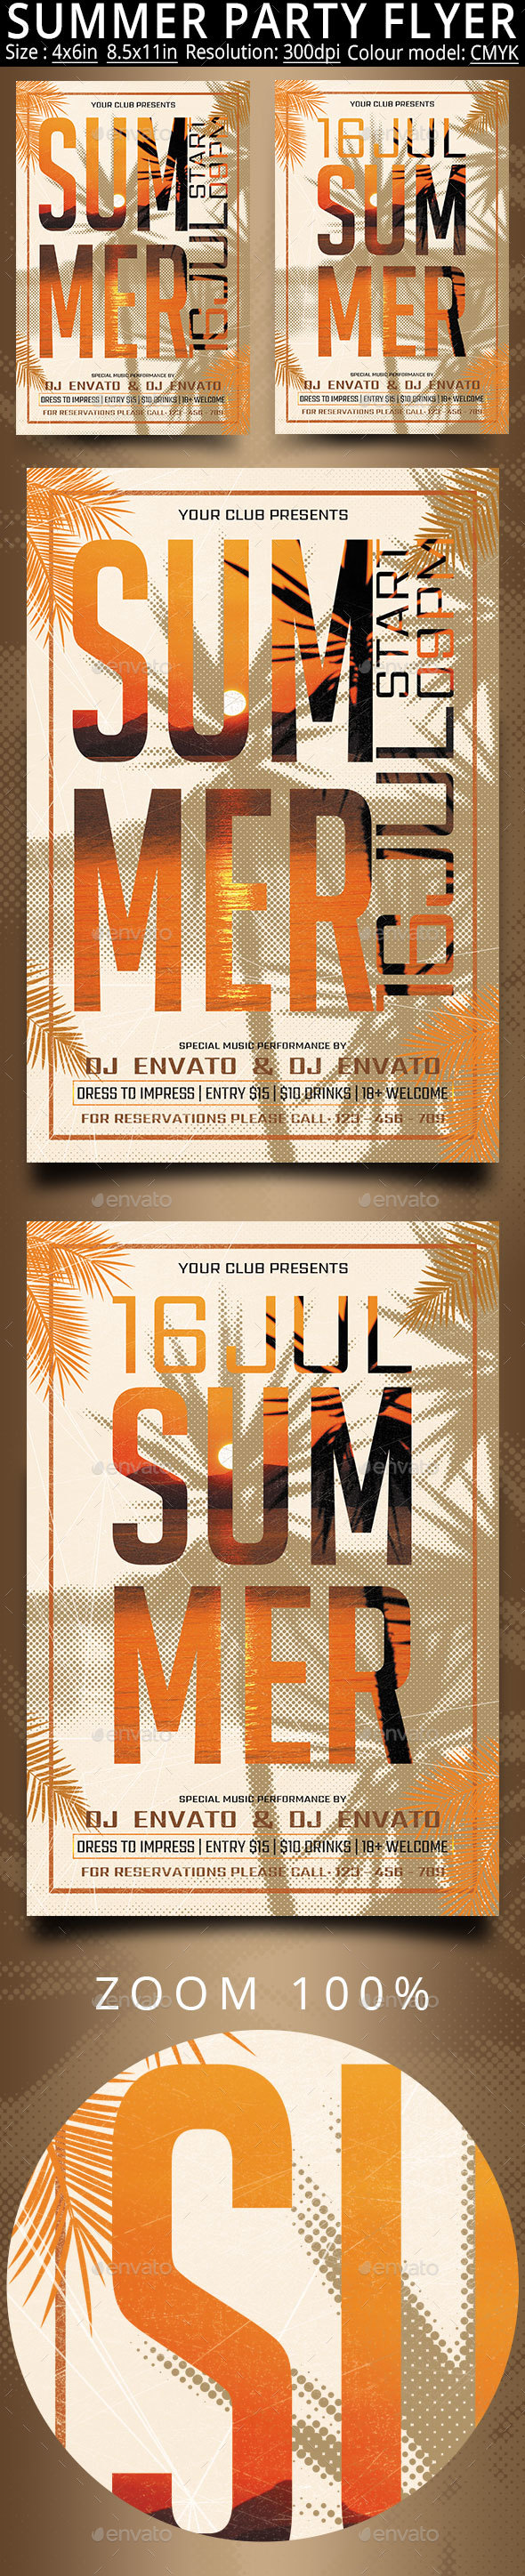 Summer Party Flyer Poster - Clubs & Parties Events